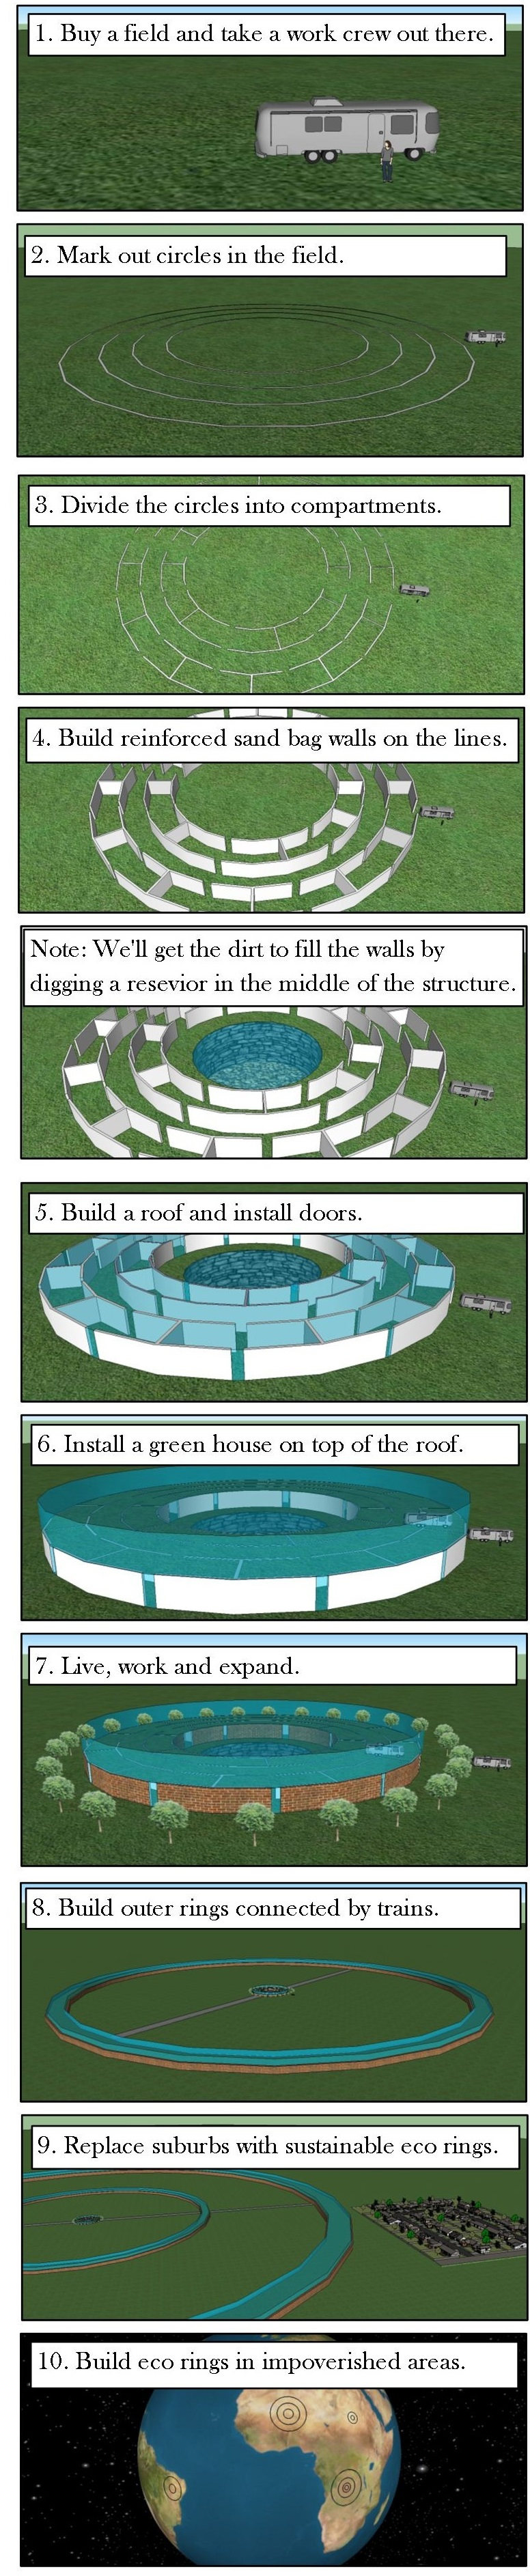 1. Buy a field. 2. Mark out circles in the field. 3. Divide the circles into compartments. 4. Build reinforced sandbag walls on the lines. 5. Build a roof and install doors. 6. Install a greenhouse on the roof. 7. Live, work and expand. 8. Build outer rings connected by trains. 9. Replace suburbs with sustainable eco-rings. 10. Build eco-rings in underdevolped areas.